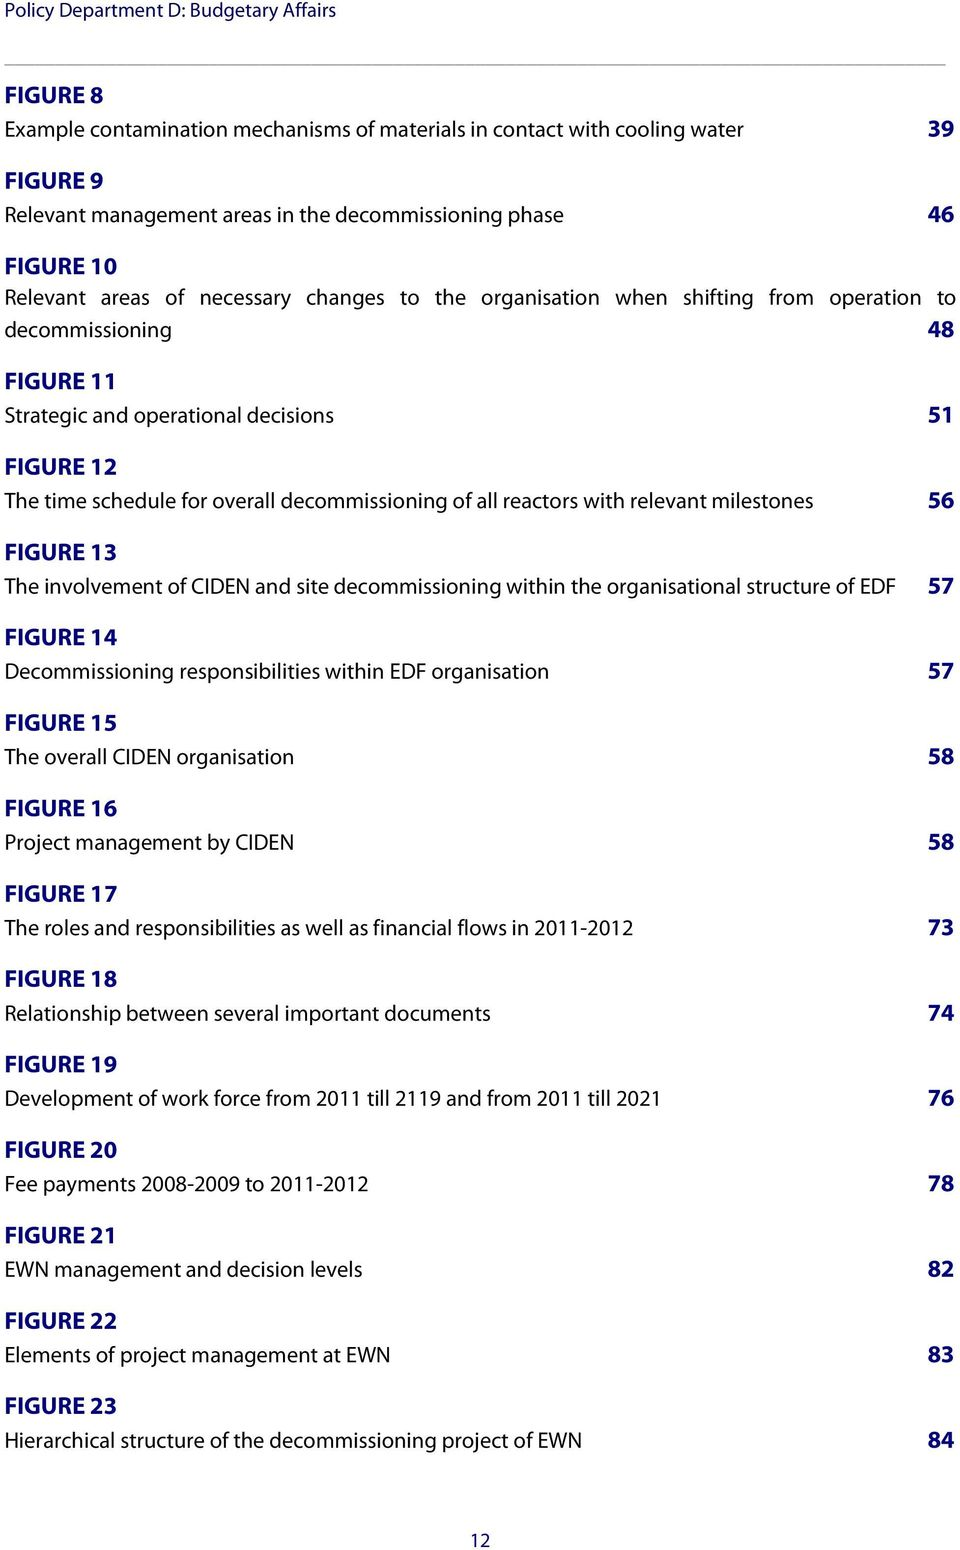 overall decommissioning of all reactors with relevant milestones 56 FIGURE 13 The involvement of CIDEN and site decommissioning within the organisational structure of EDF 57 FIGURE 14 Decommissioning